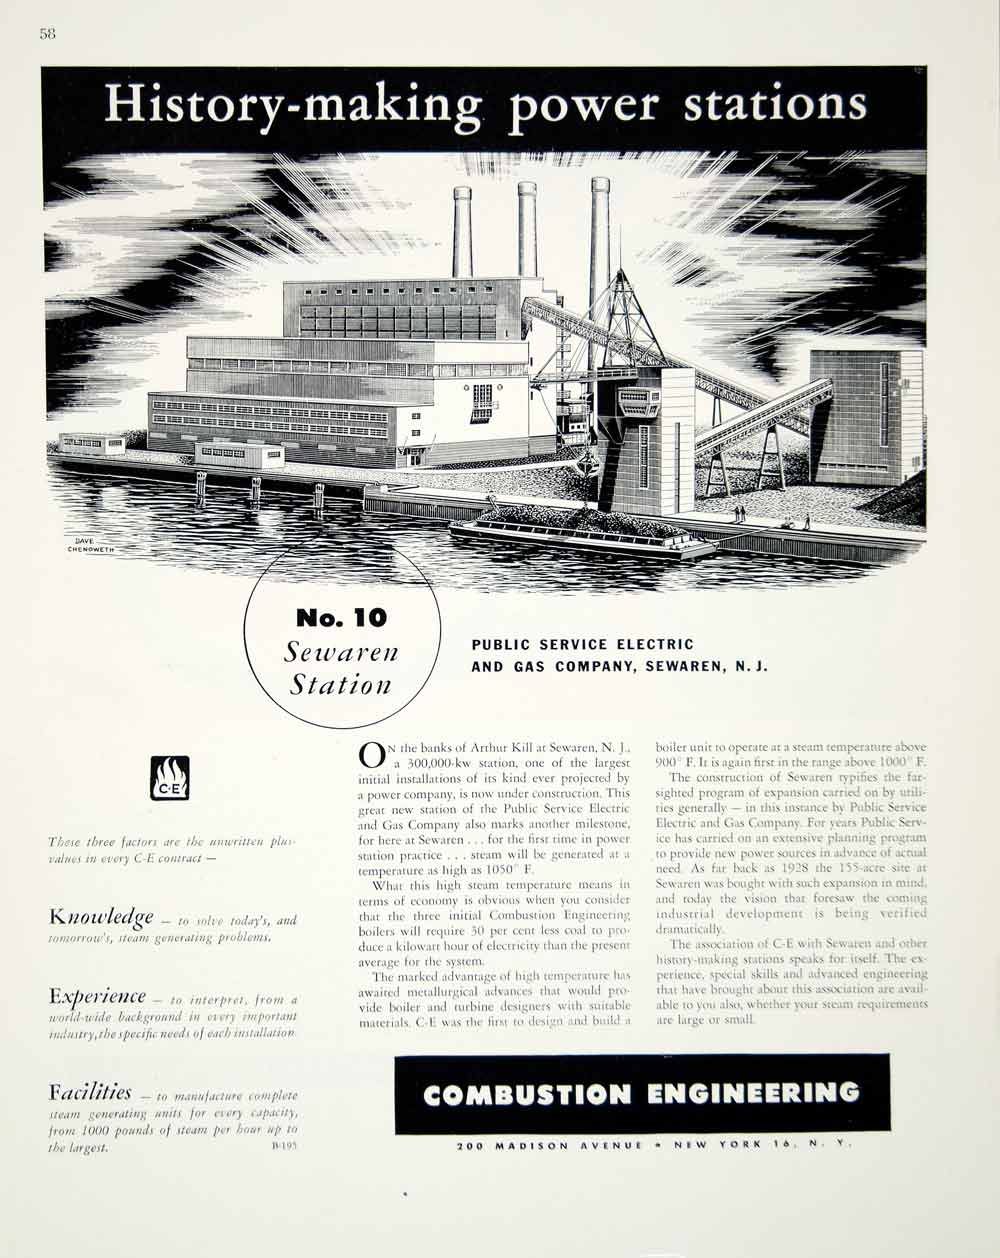 1948 Ad Combustion Engineering 200 Madison Ave C-E Dave Chenoweth Power FTM3